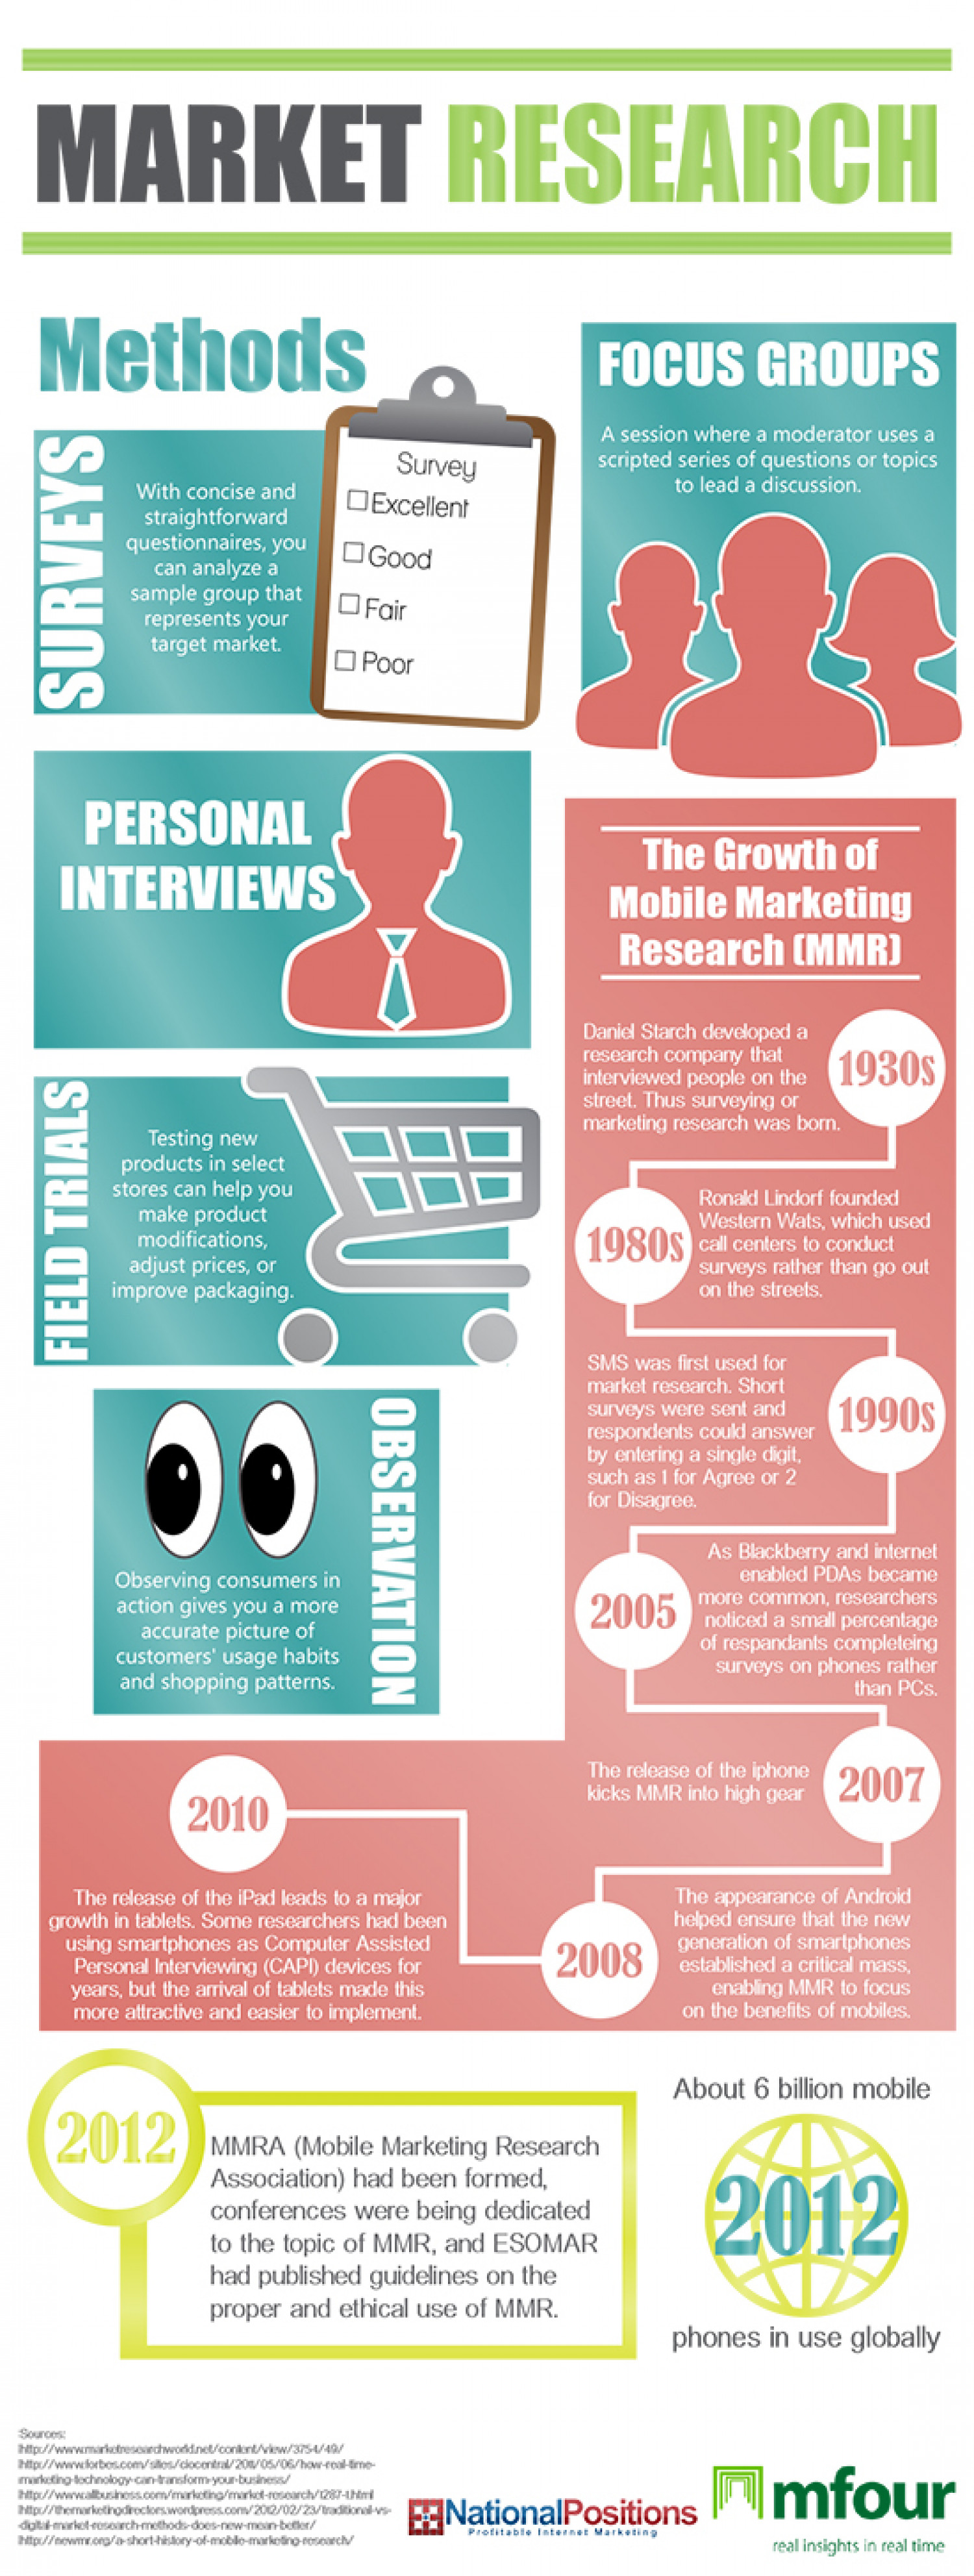 Market Research Methods Infographic